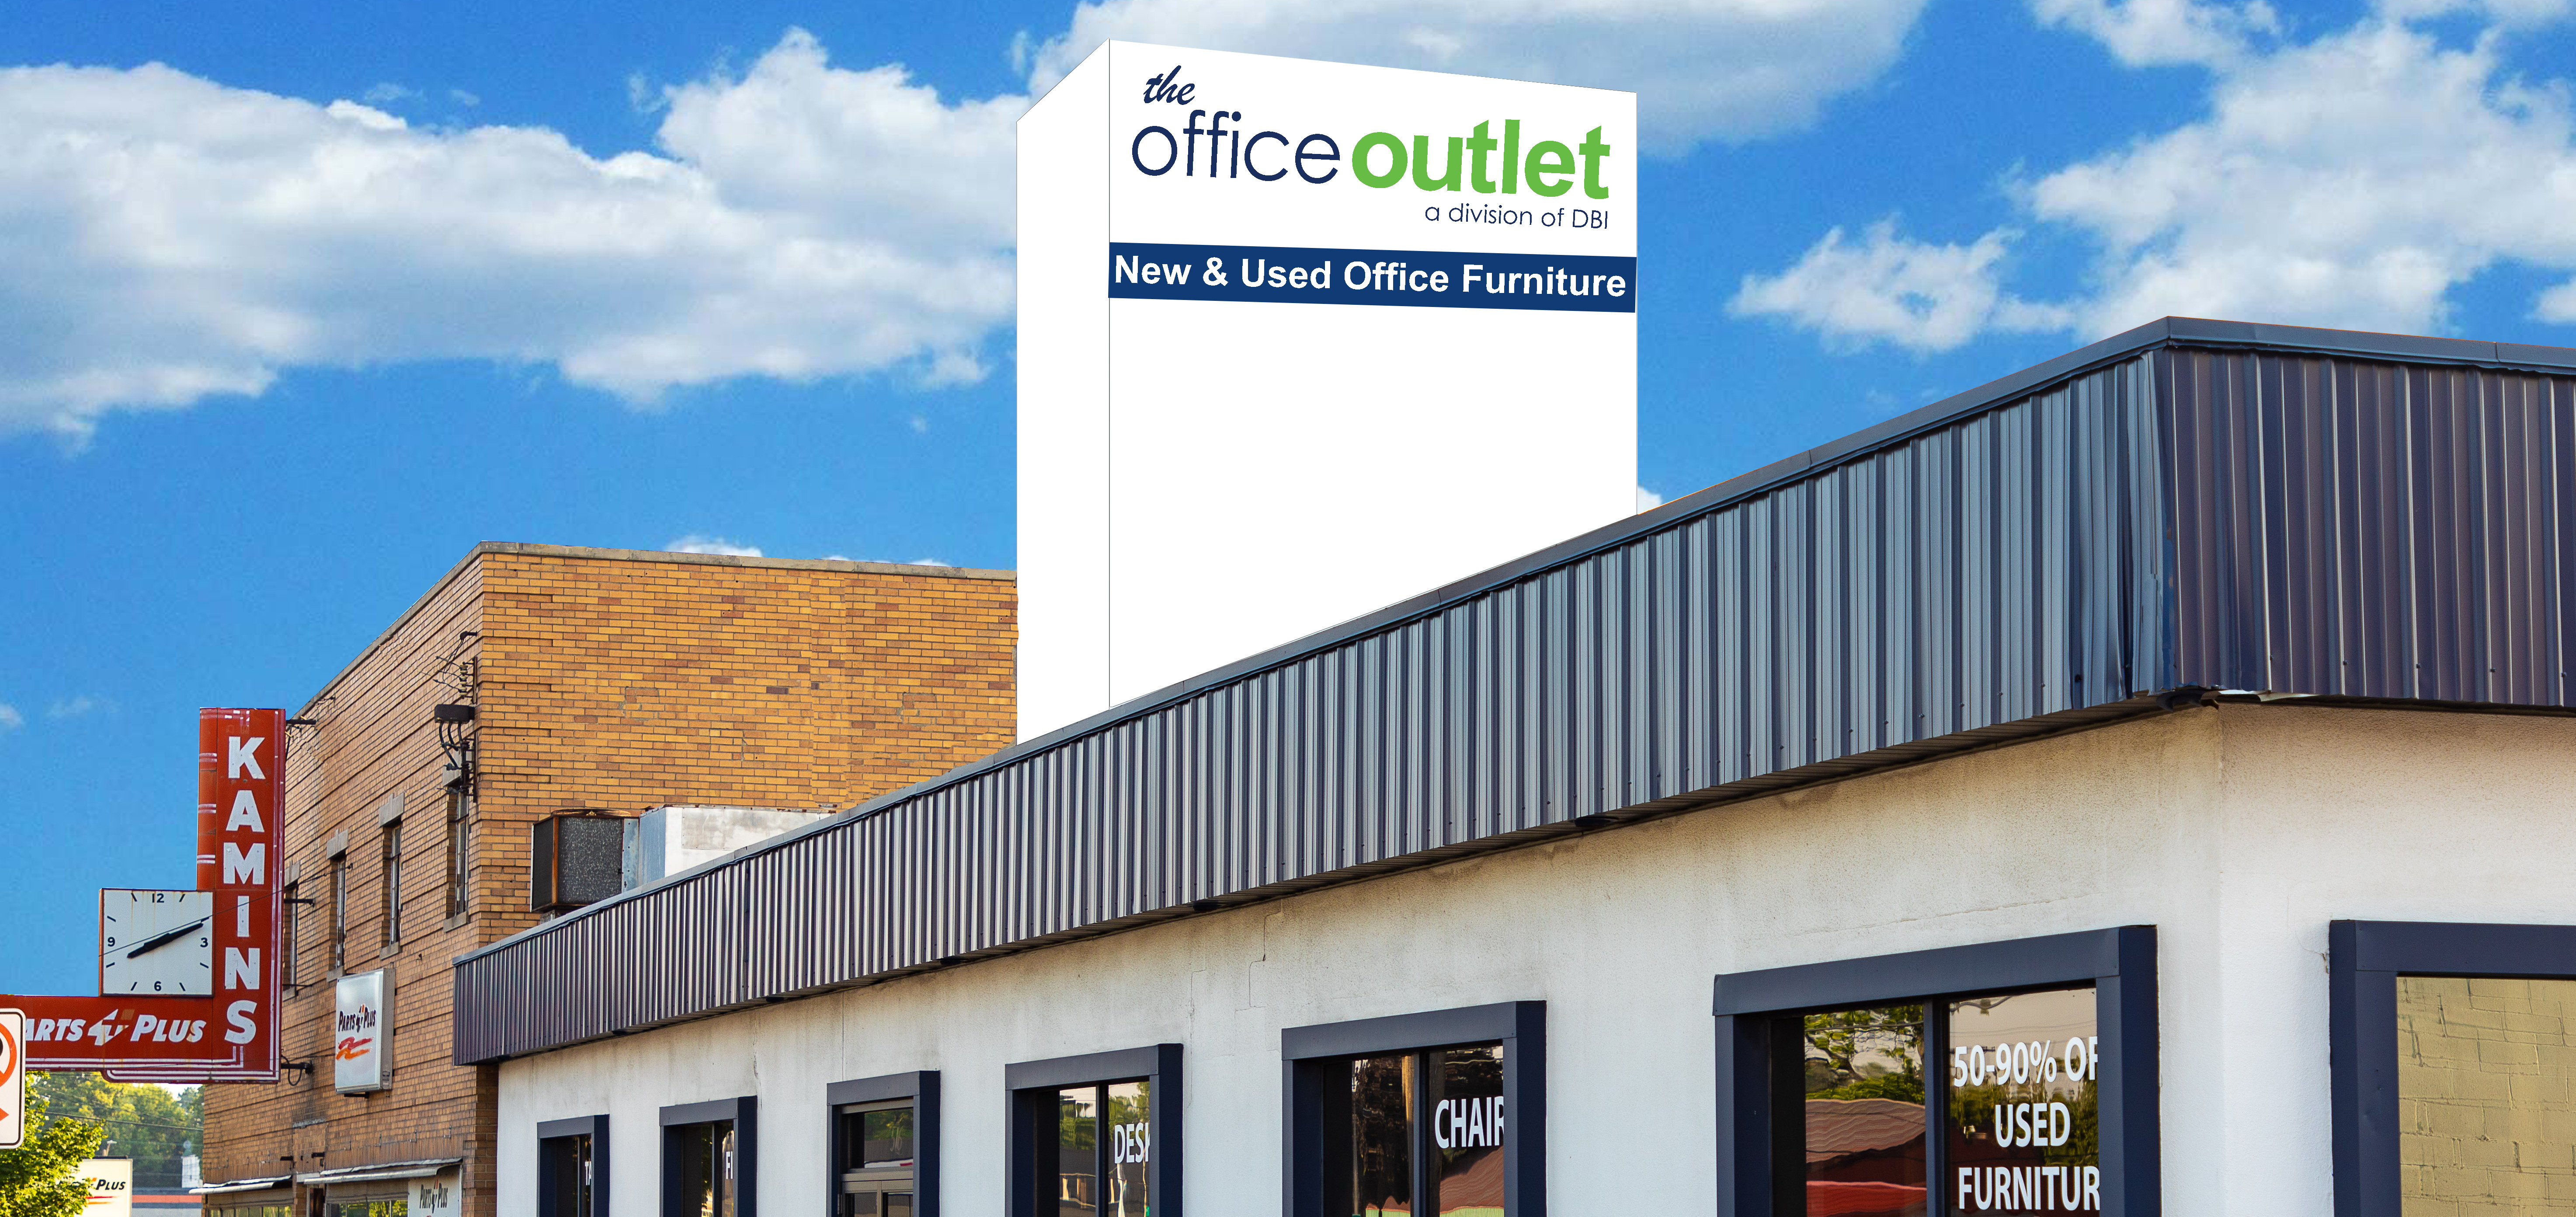 Etonnant Affordable Office Furniture   United States   The Office Outlet